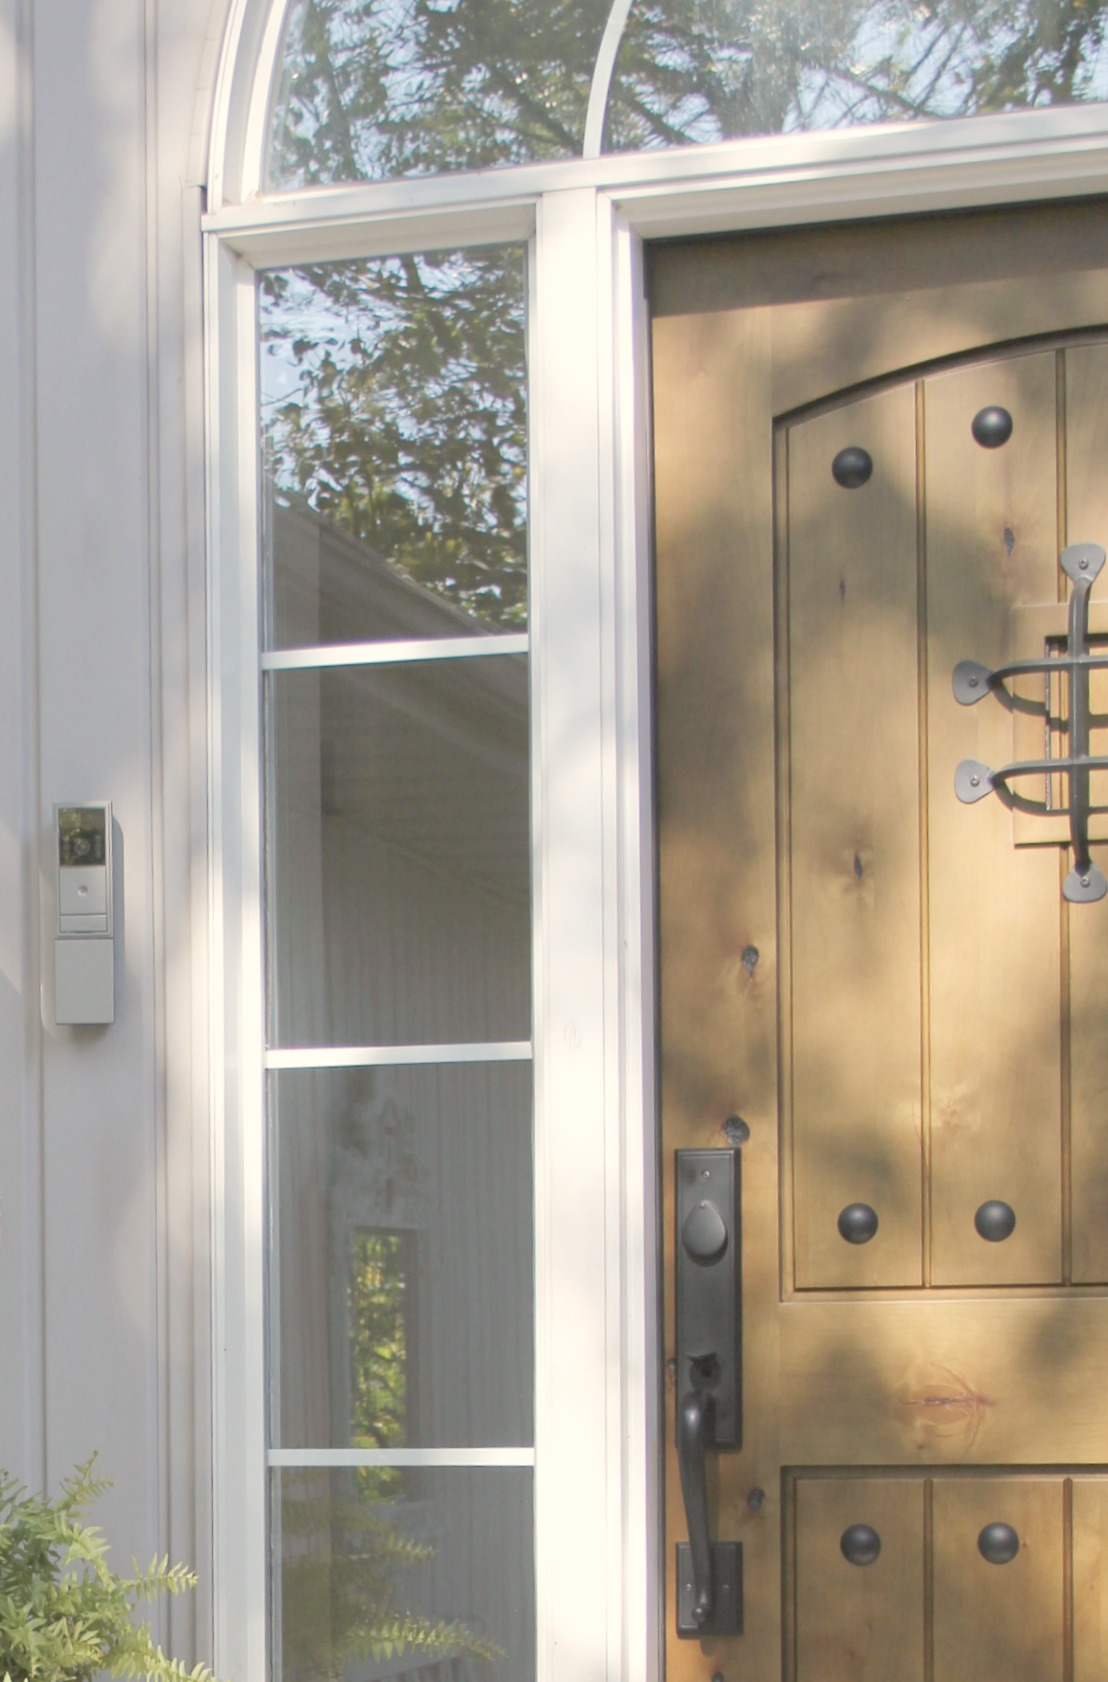 Exterior video doorbell intercom from adorne - Hello Lovely